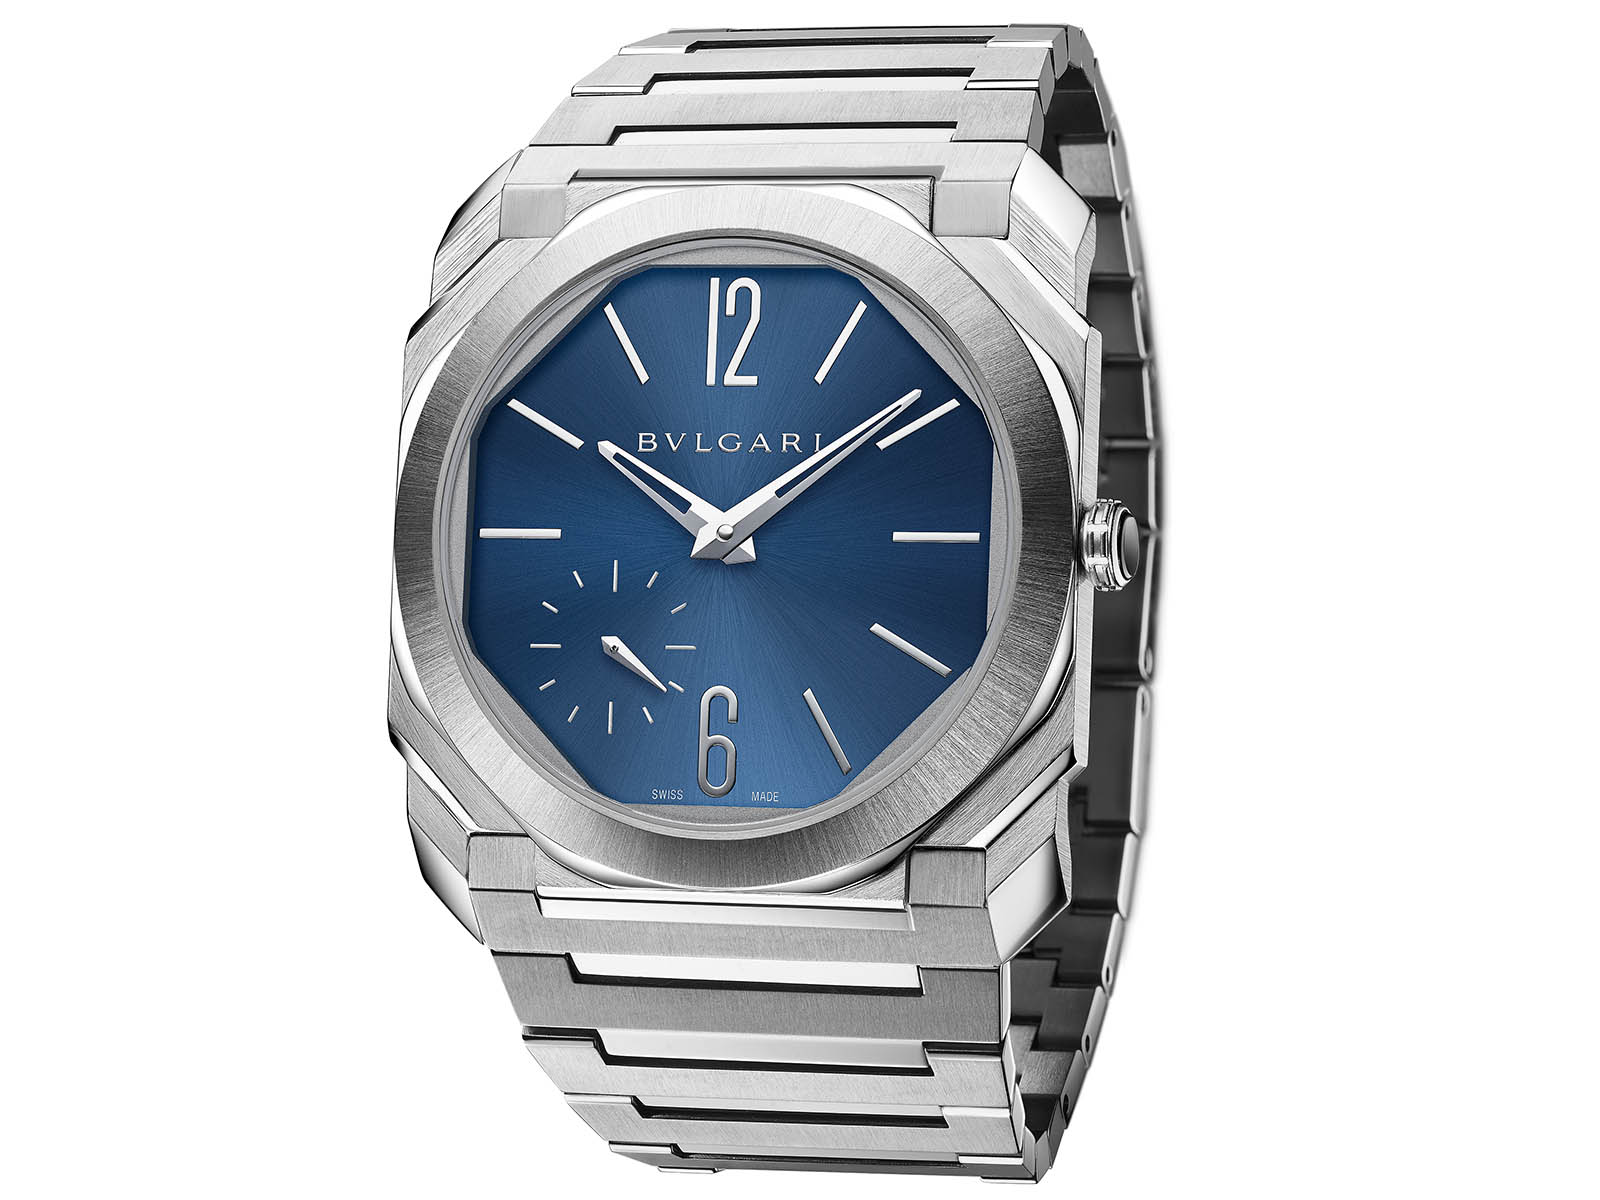 103431-bvlgari-octo-finissimo-blue-dial-in-steel-7.jpg